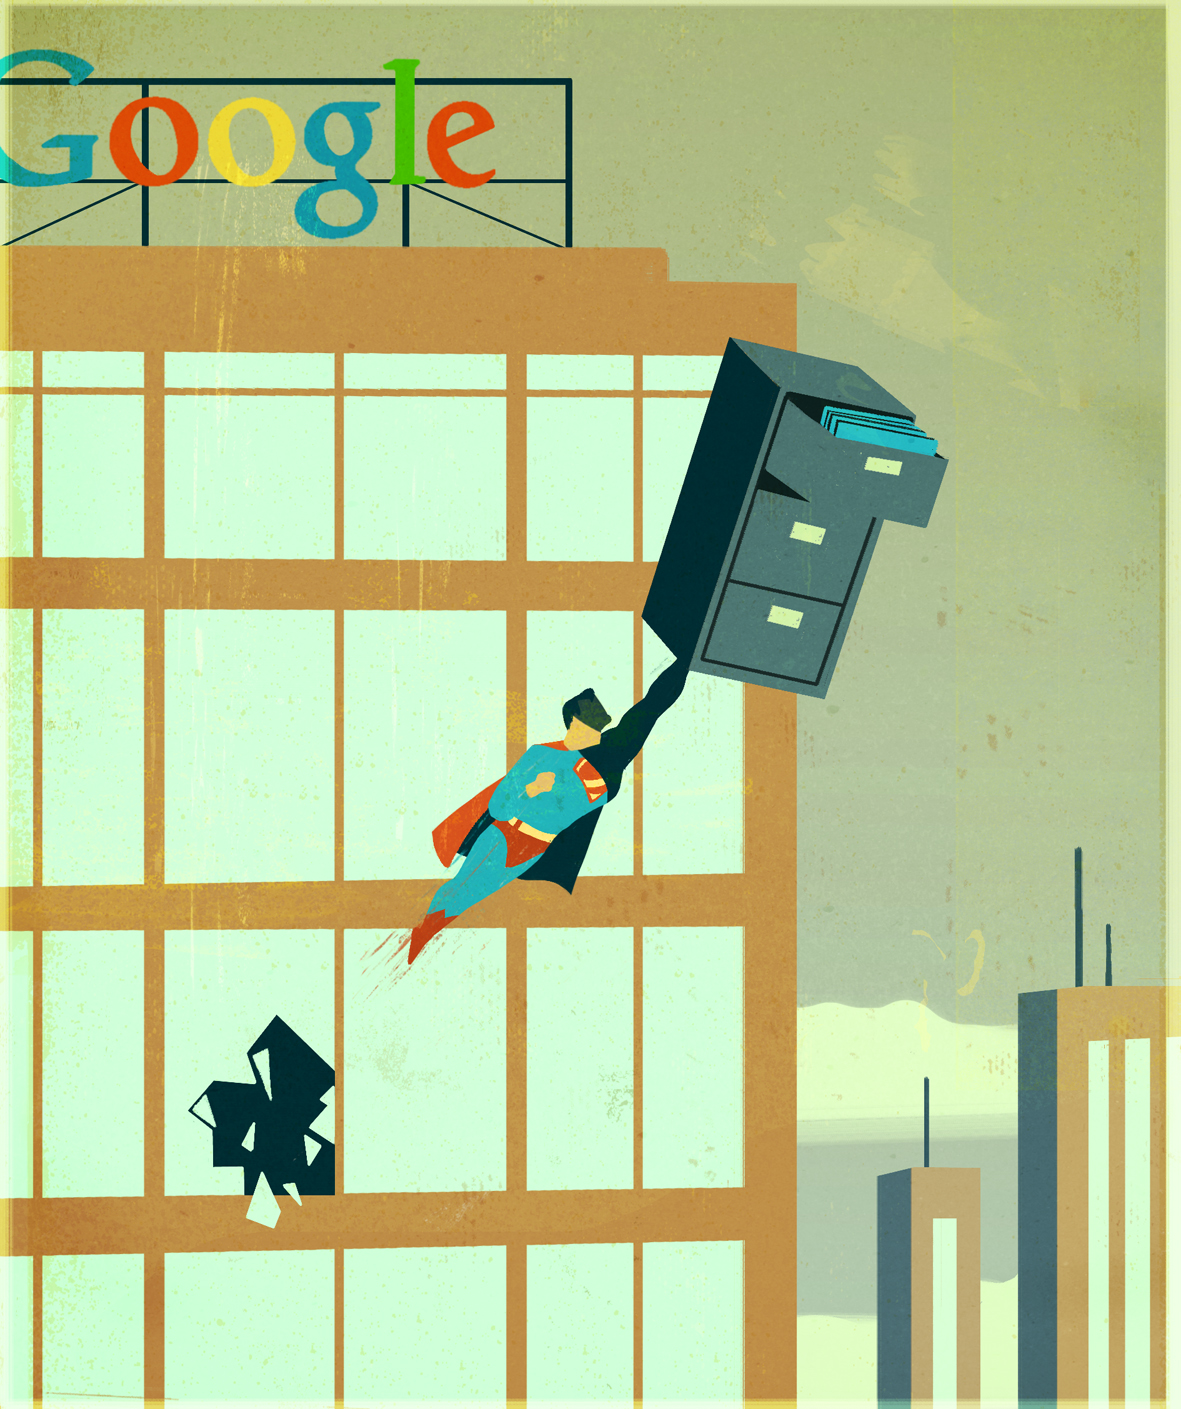 liberate your data from google [img 1]